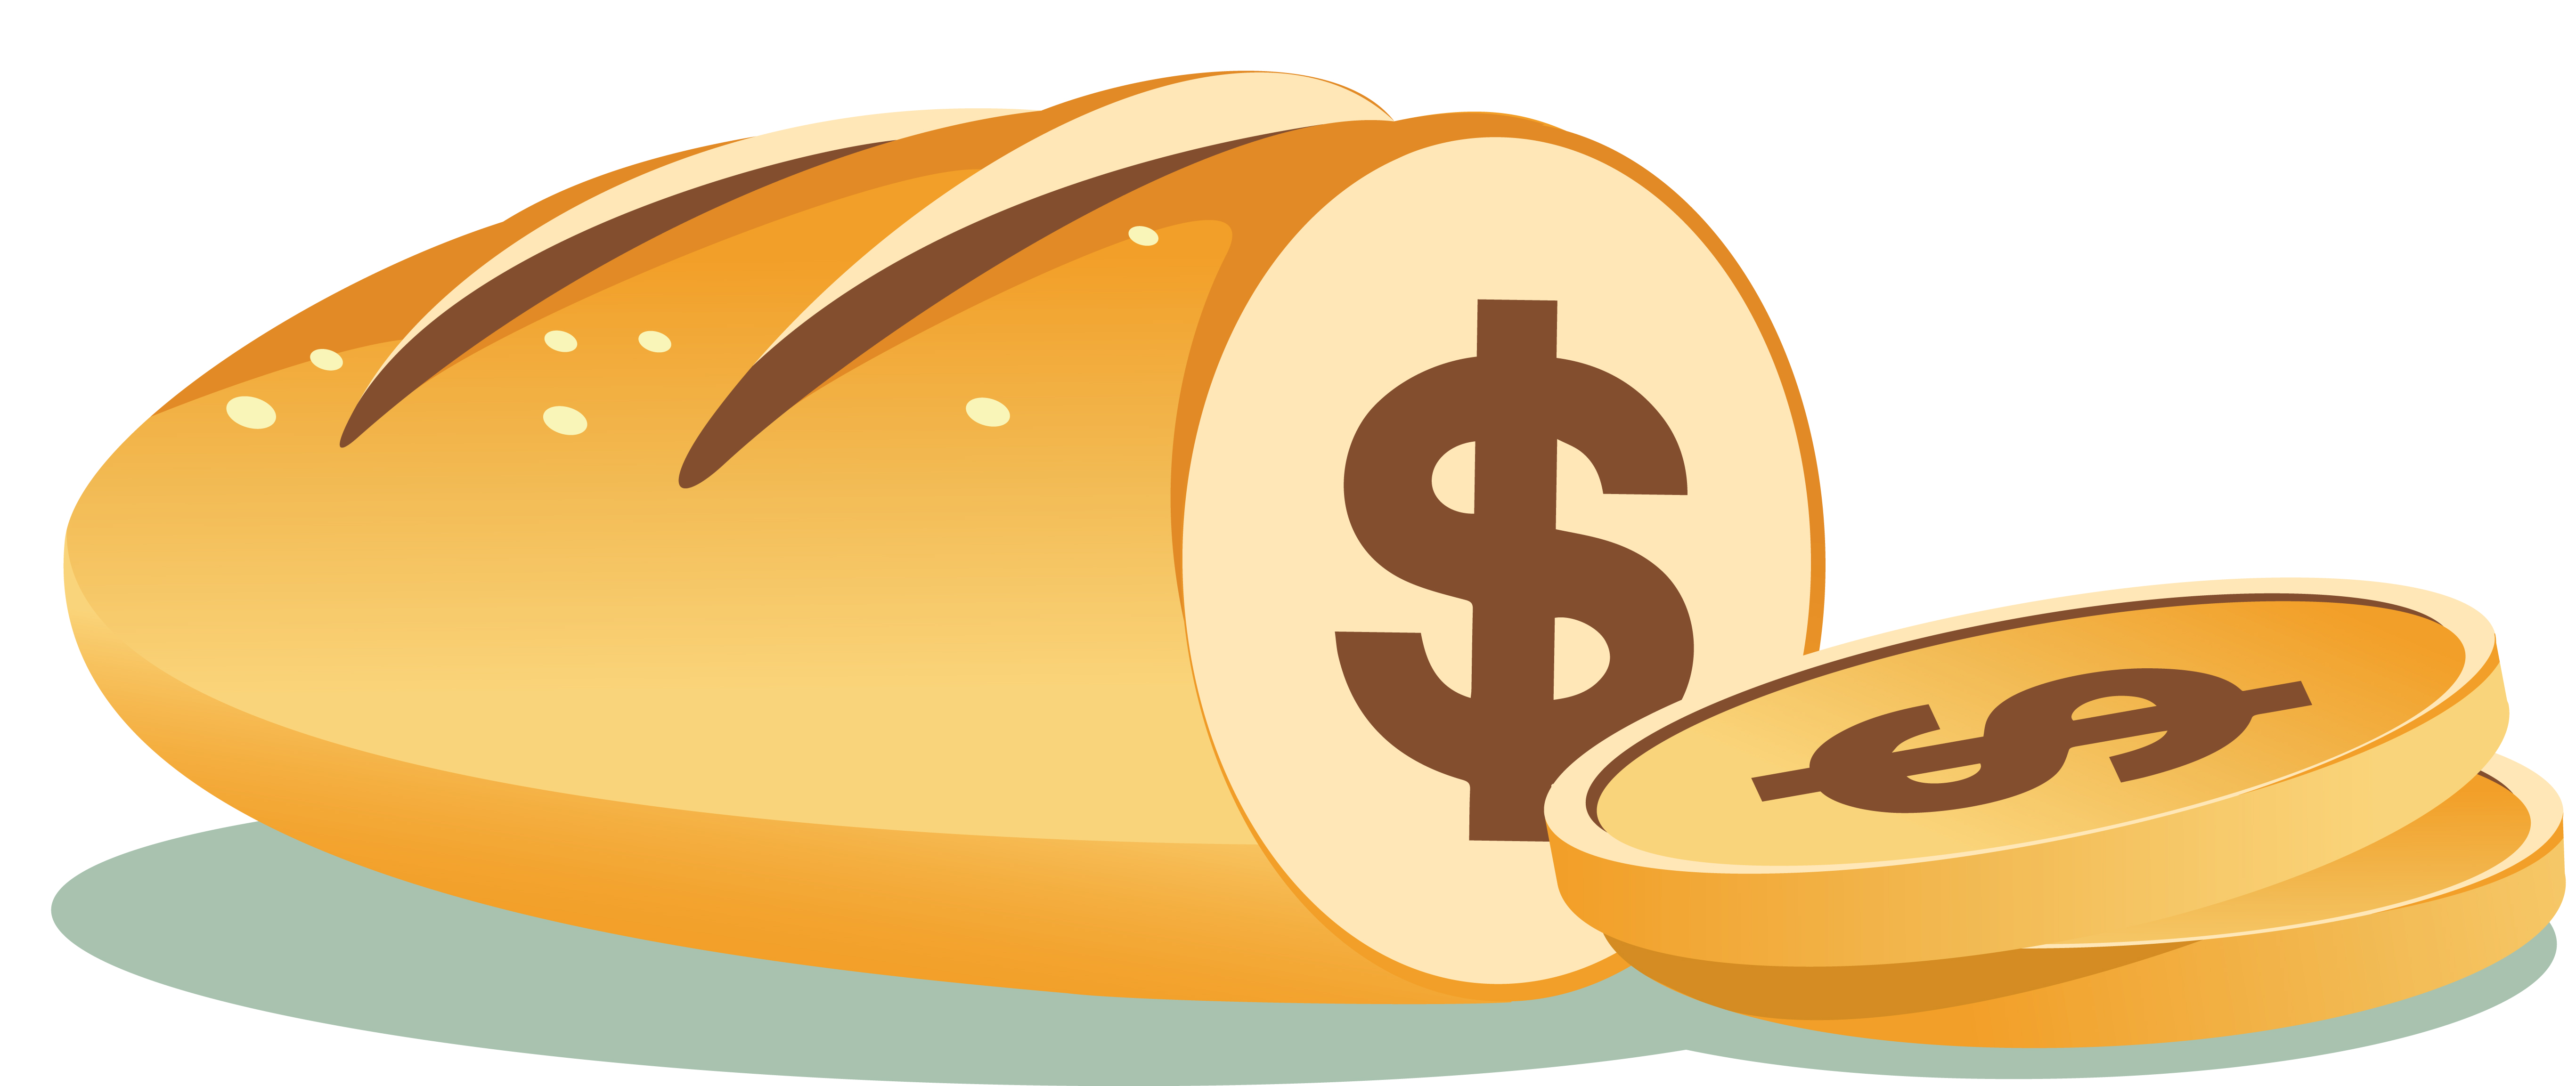 Bread Budgeting – what's in a name?